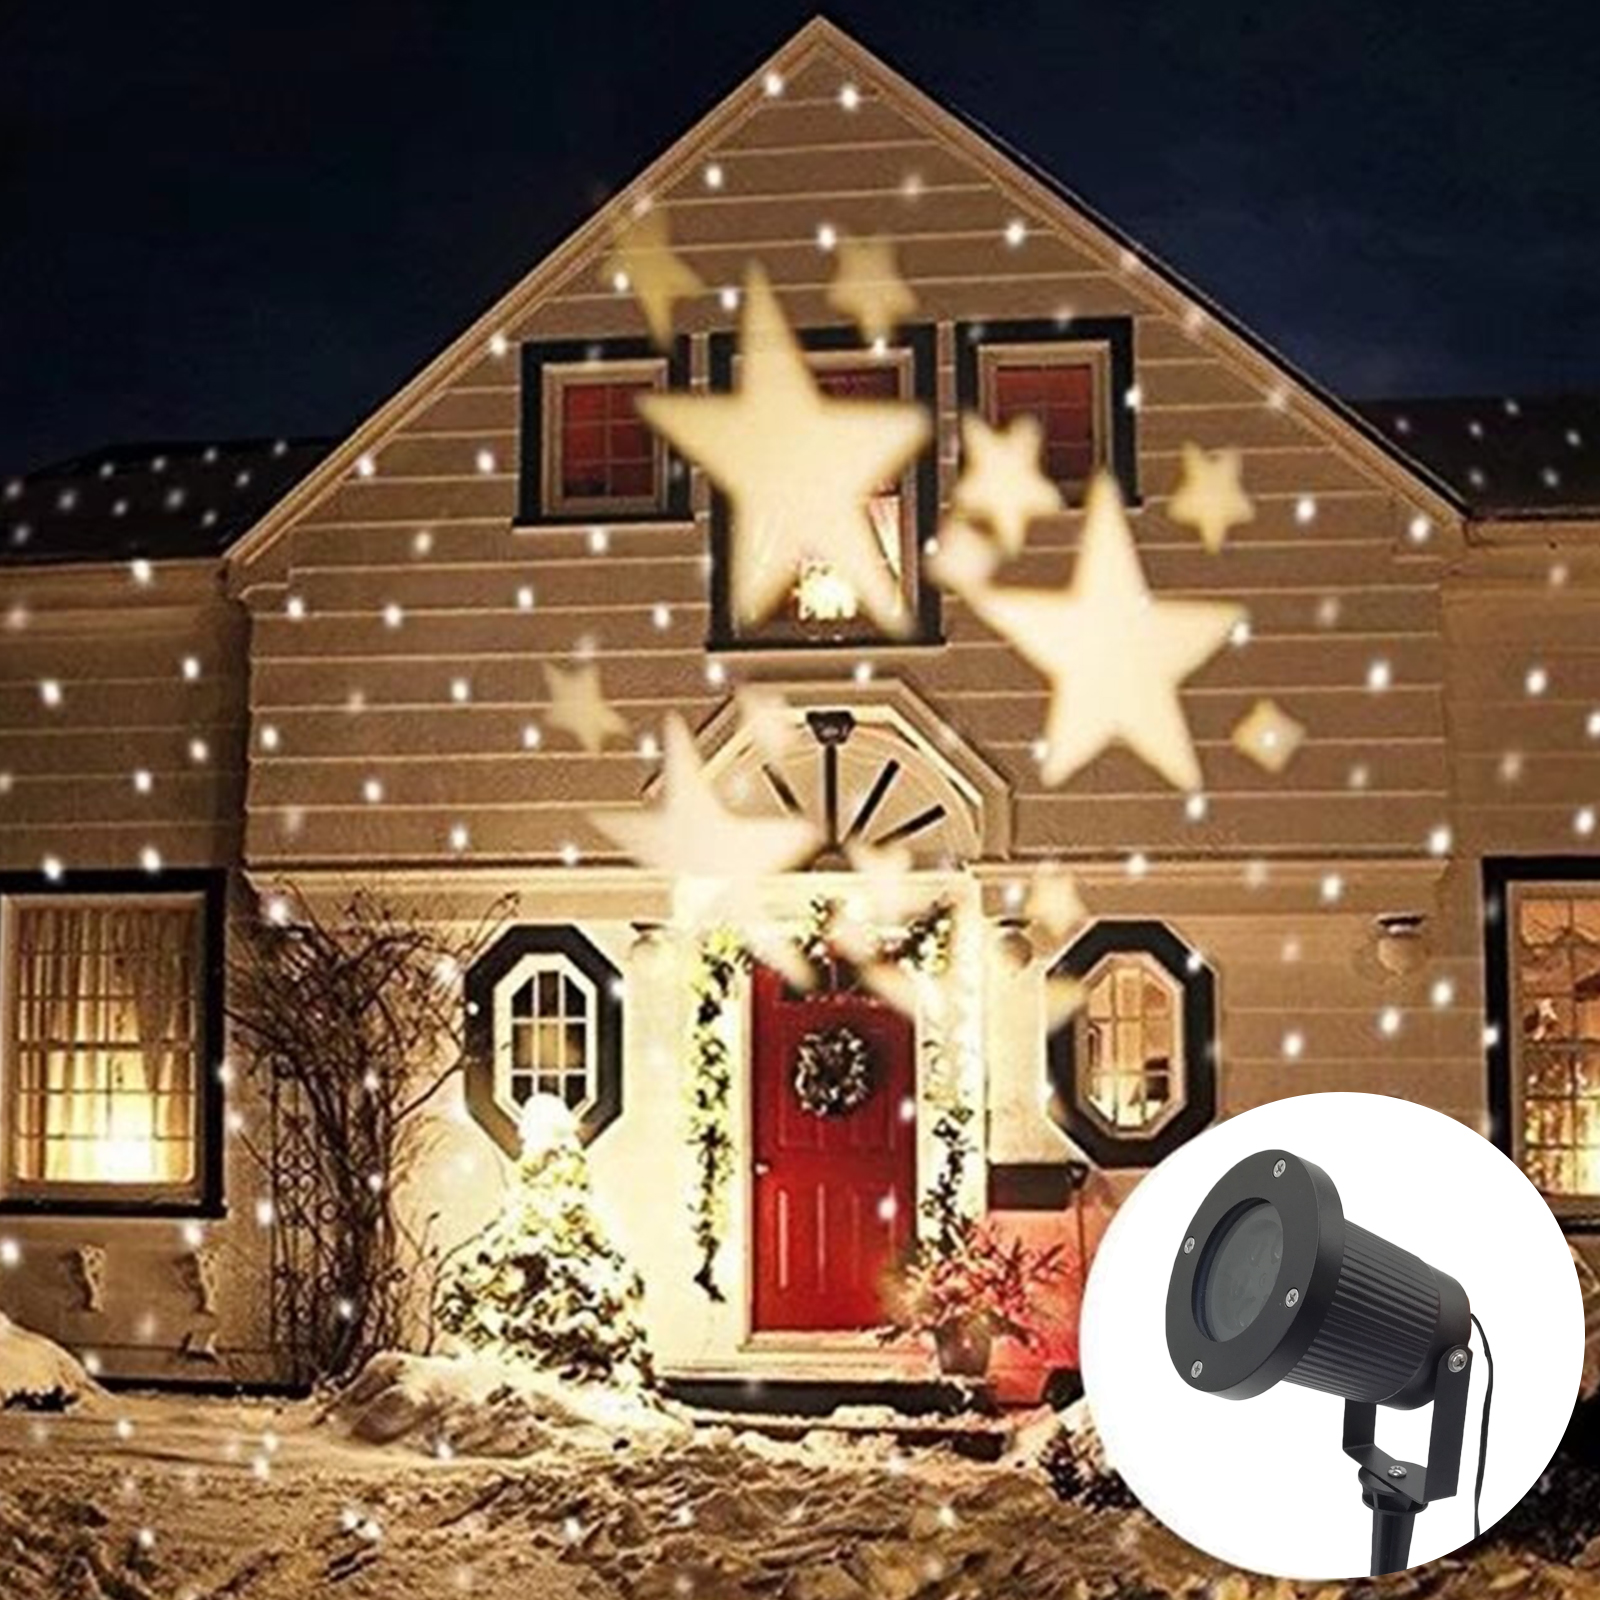 Reject Shop Laser Christmas Lights: Christmas Light Laser Projection Warm White Xmas Lamp